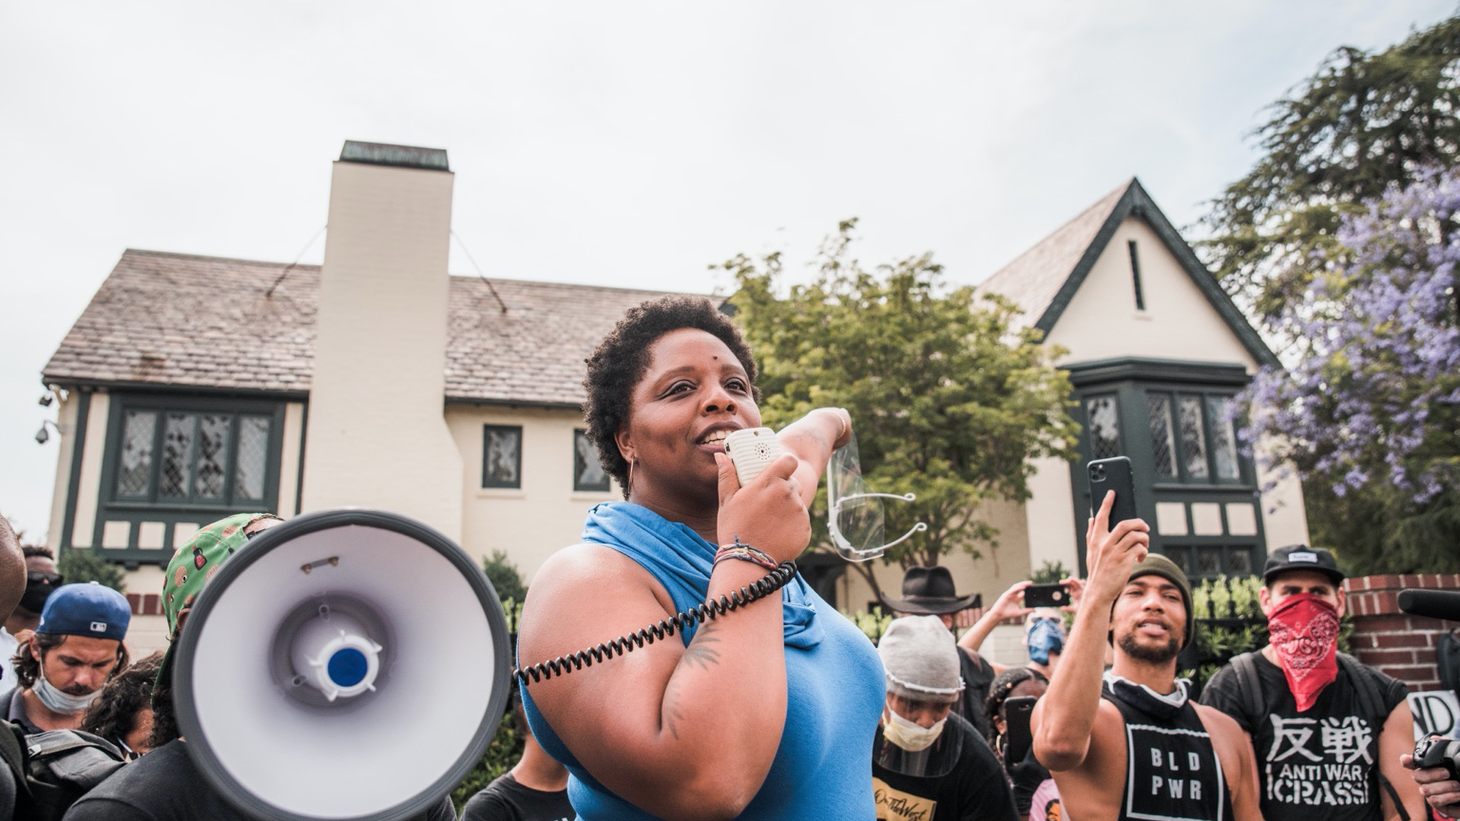 Patrisse Cullors participates in a protest in front of LA Mayor Garcetti's home. June 2, 2020.